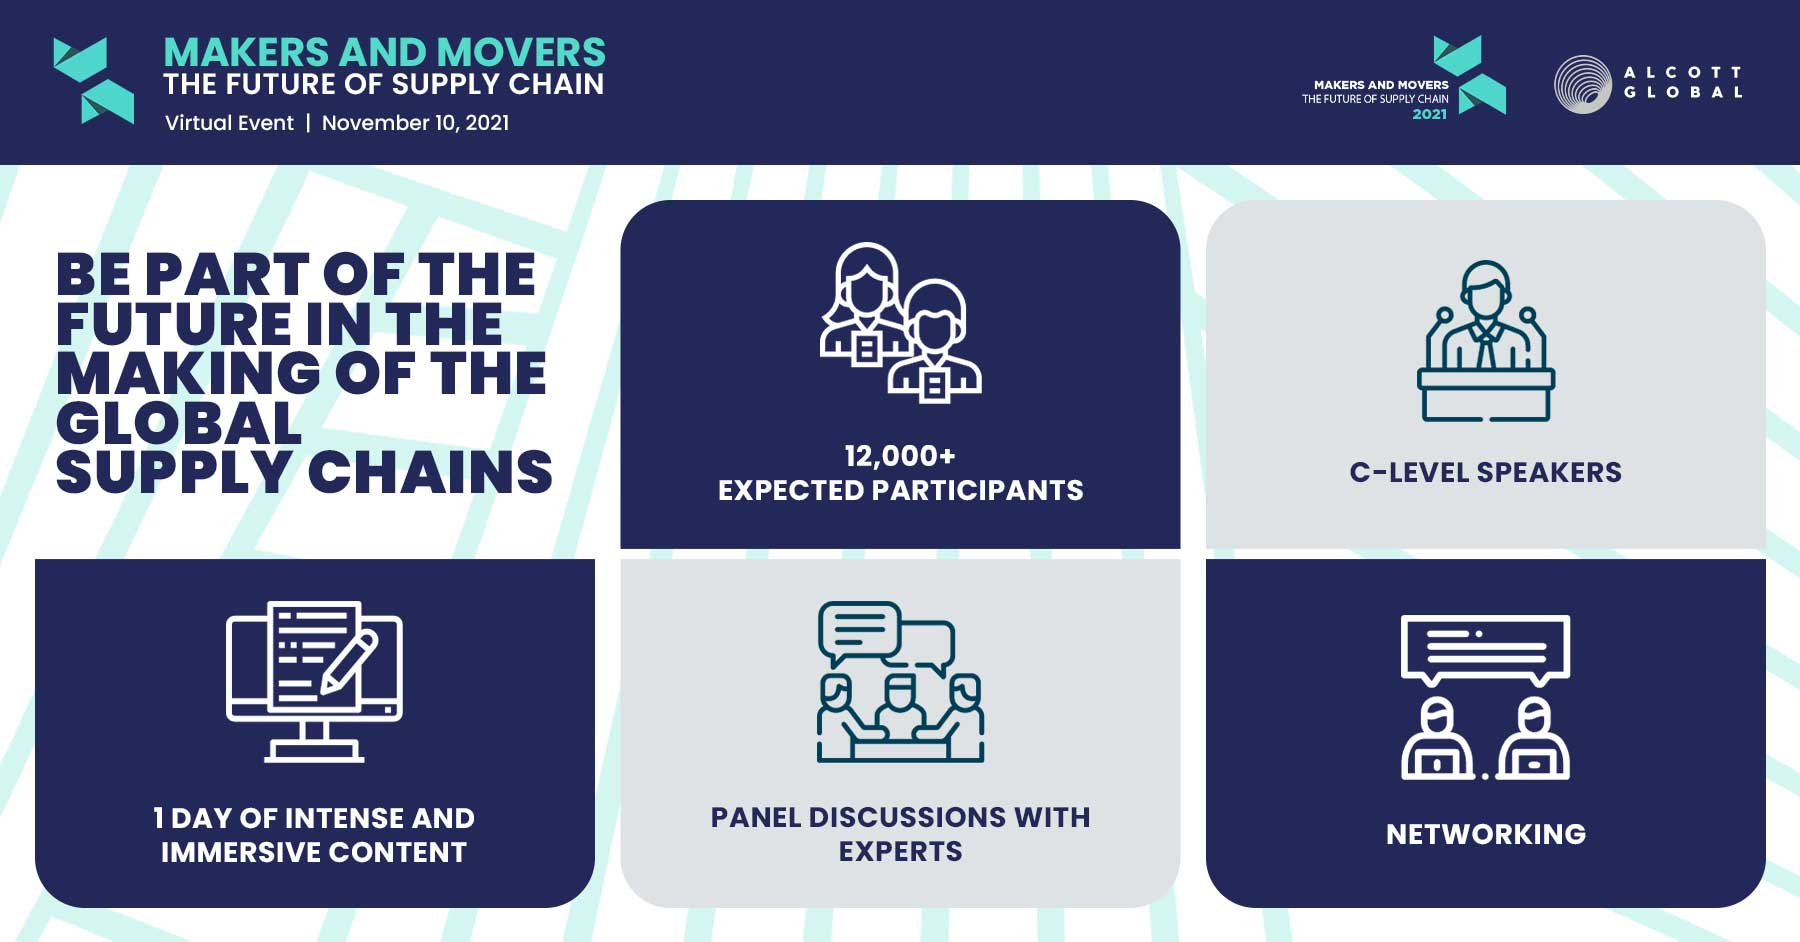 Makers & Movers - The Future of Supply Chain Summit Featured Image